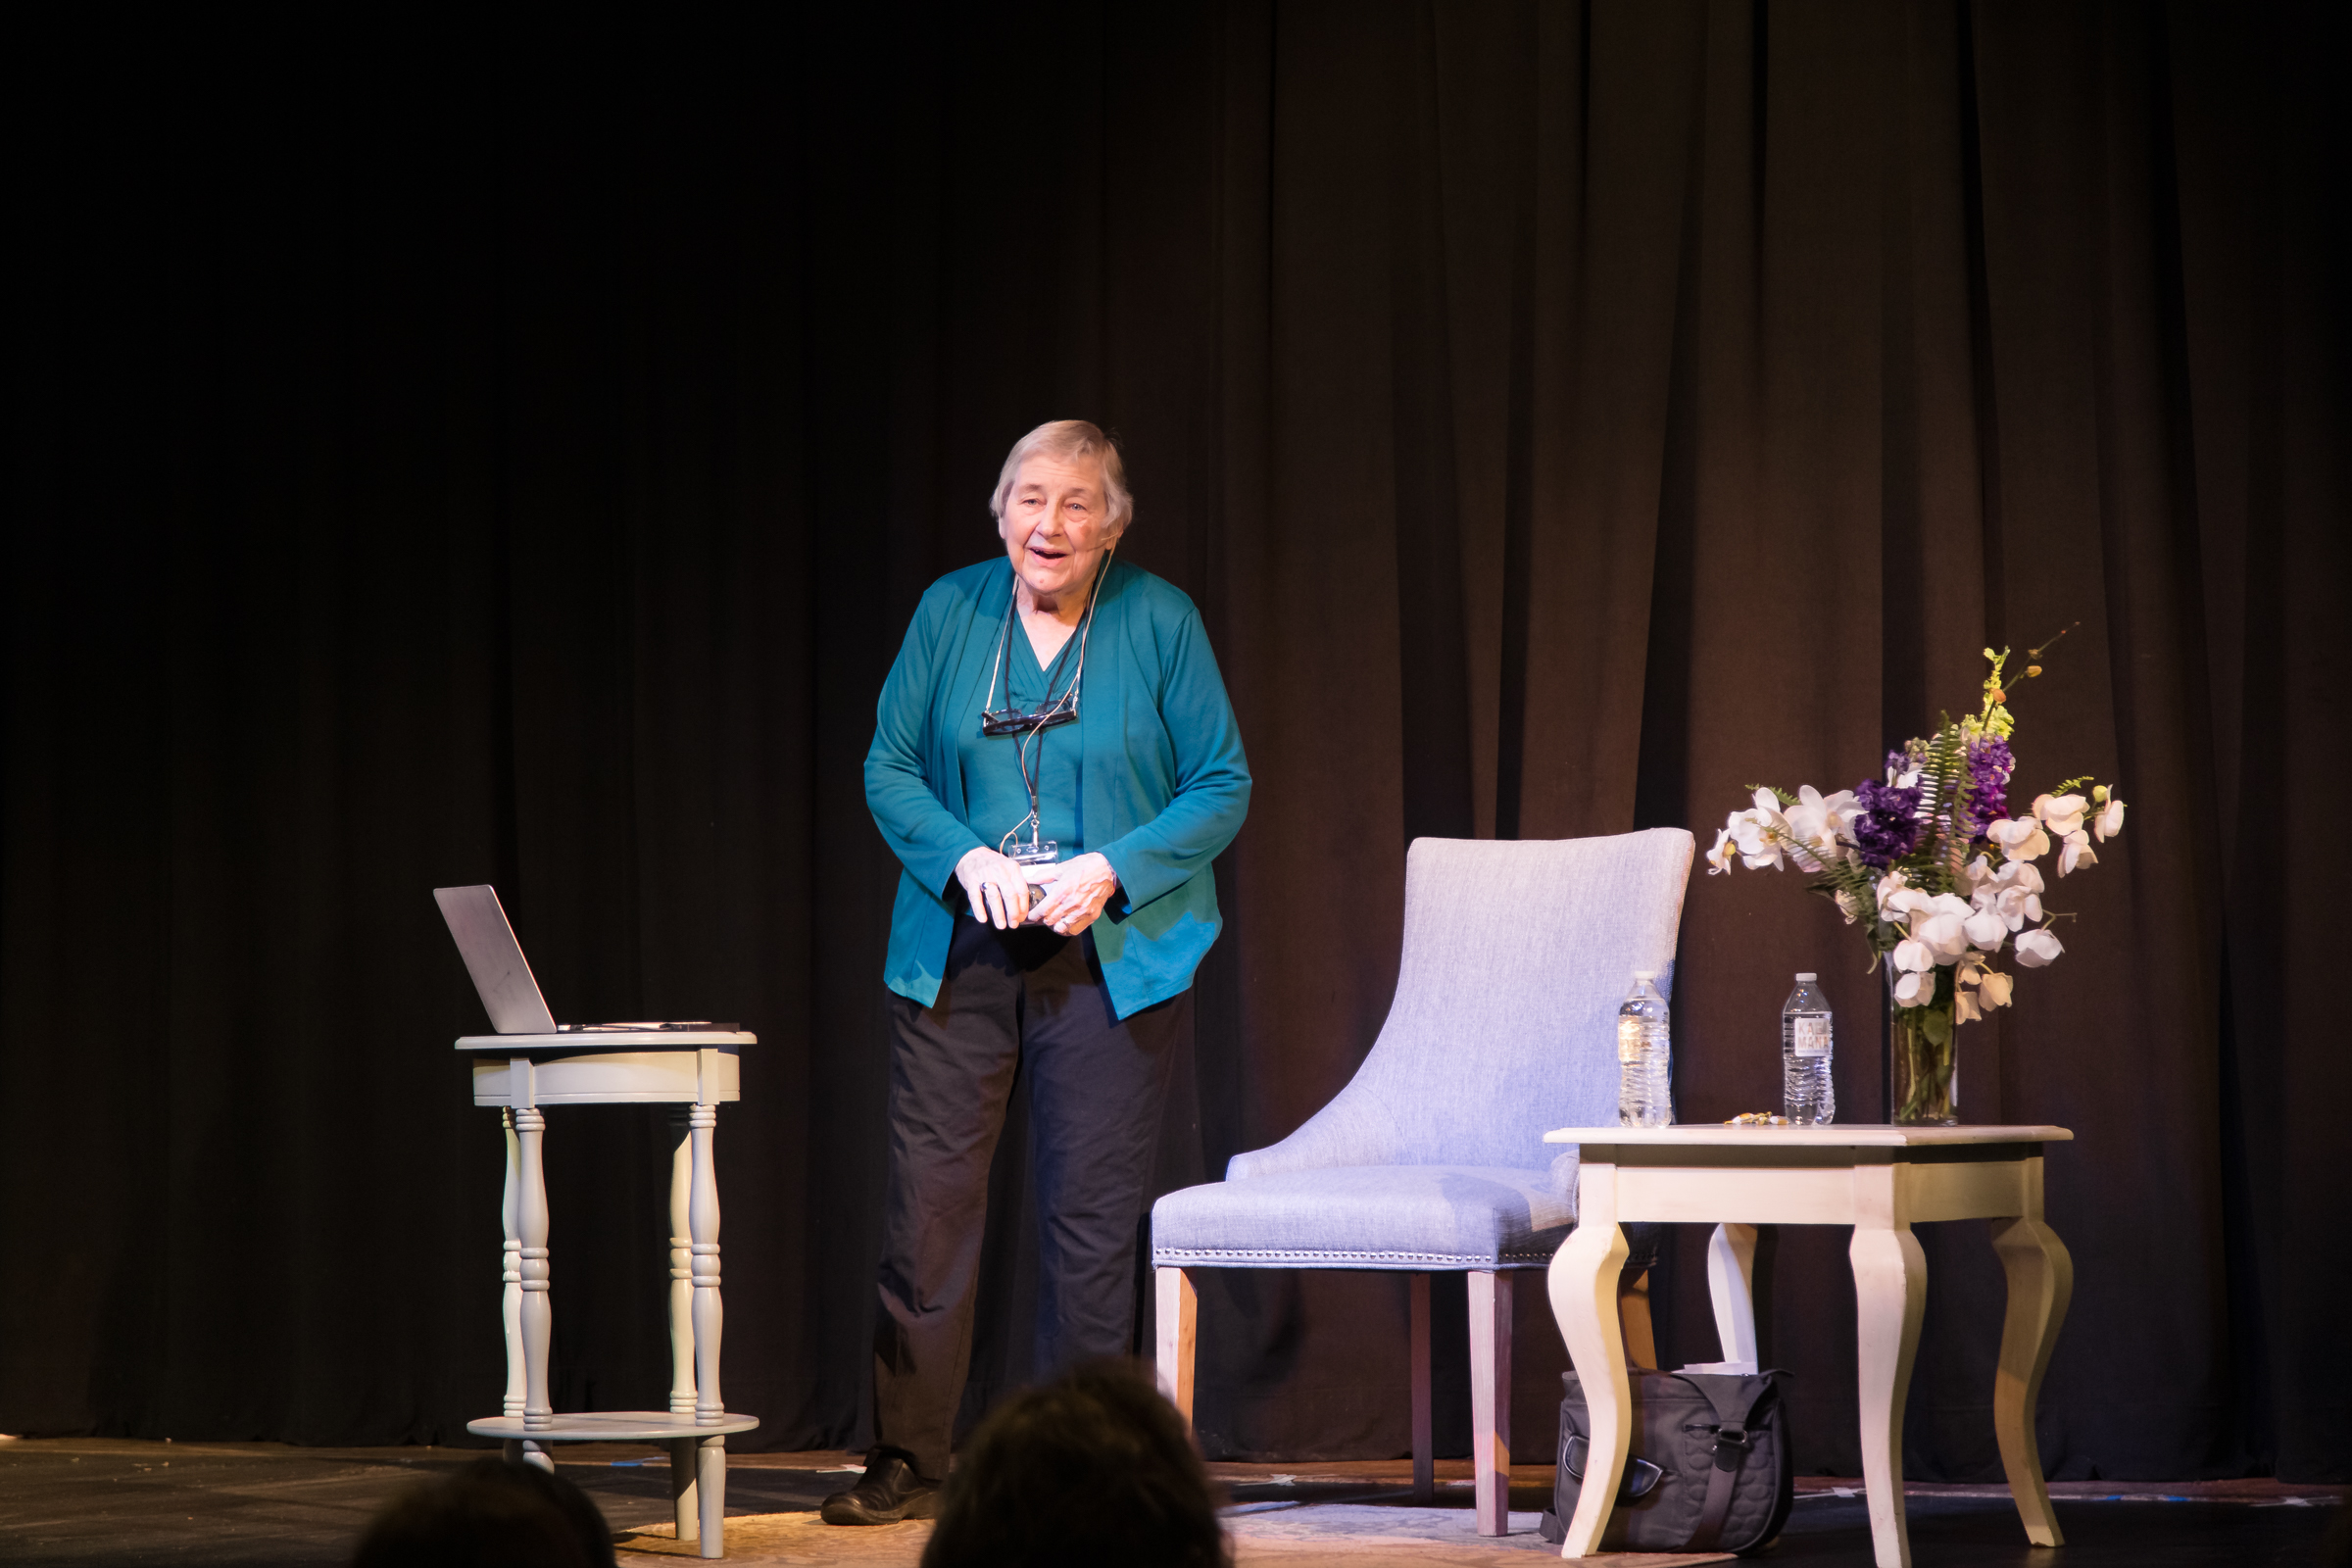 It was such a gift to have Penny Simkin speak at our conference. We are so thankful for the wisdom she shared with us!